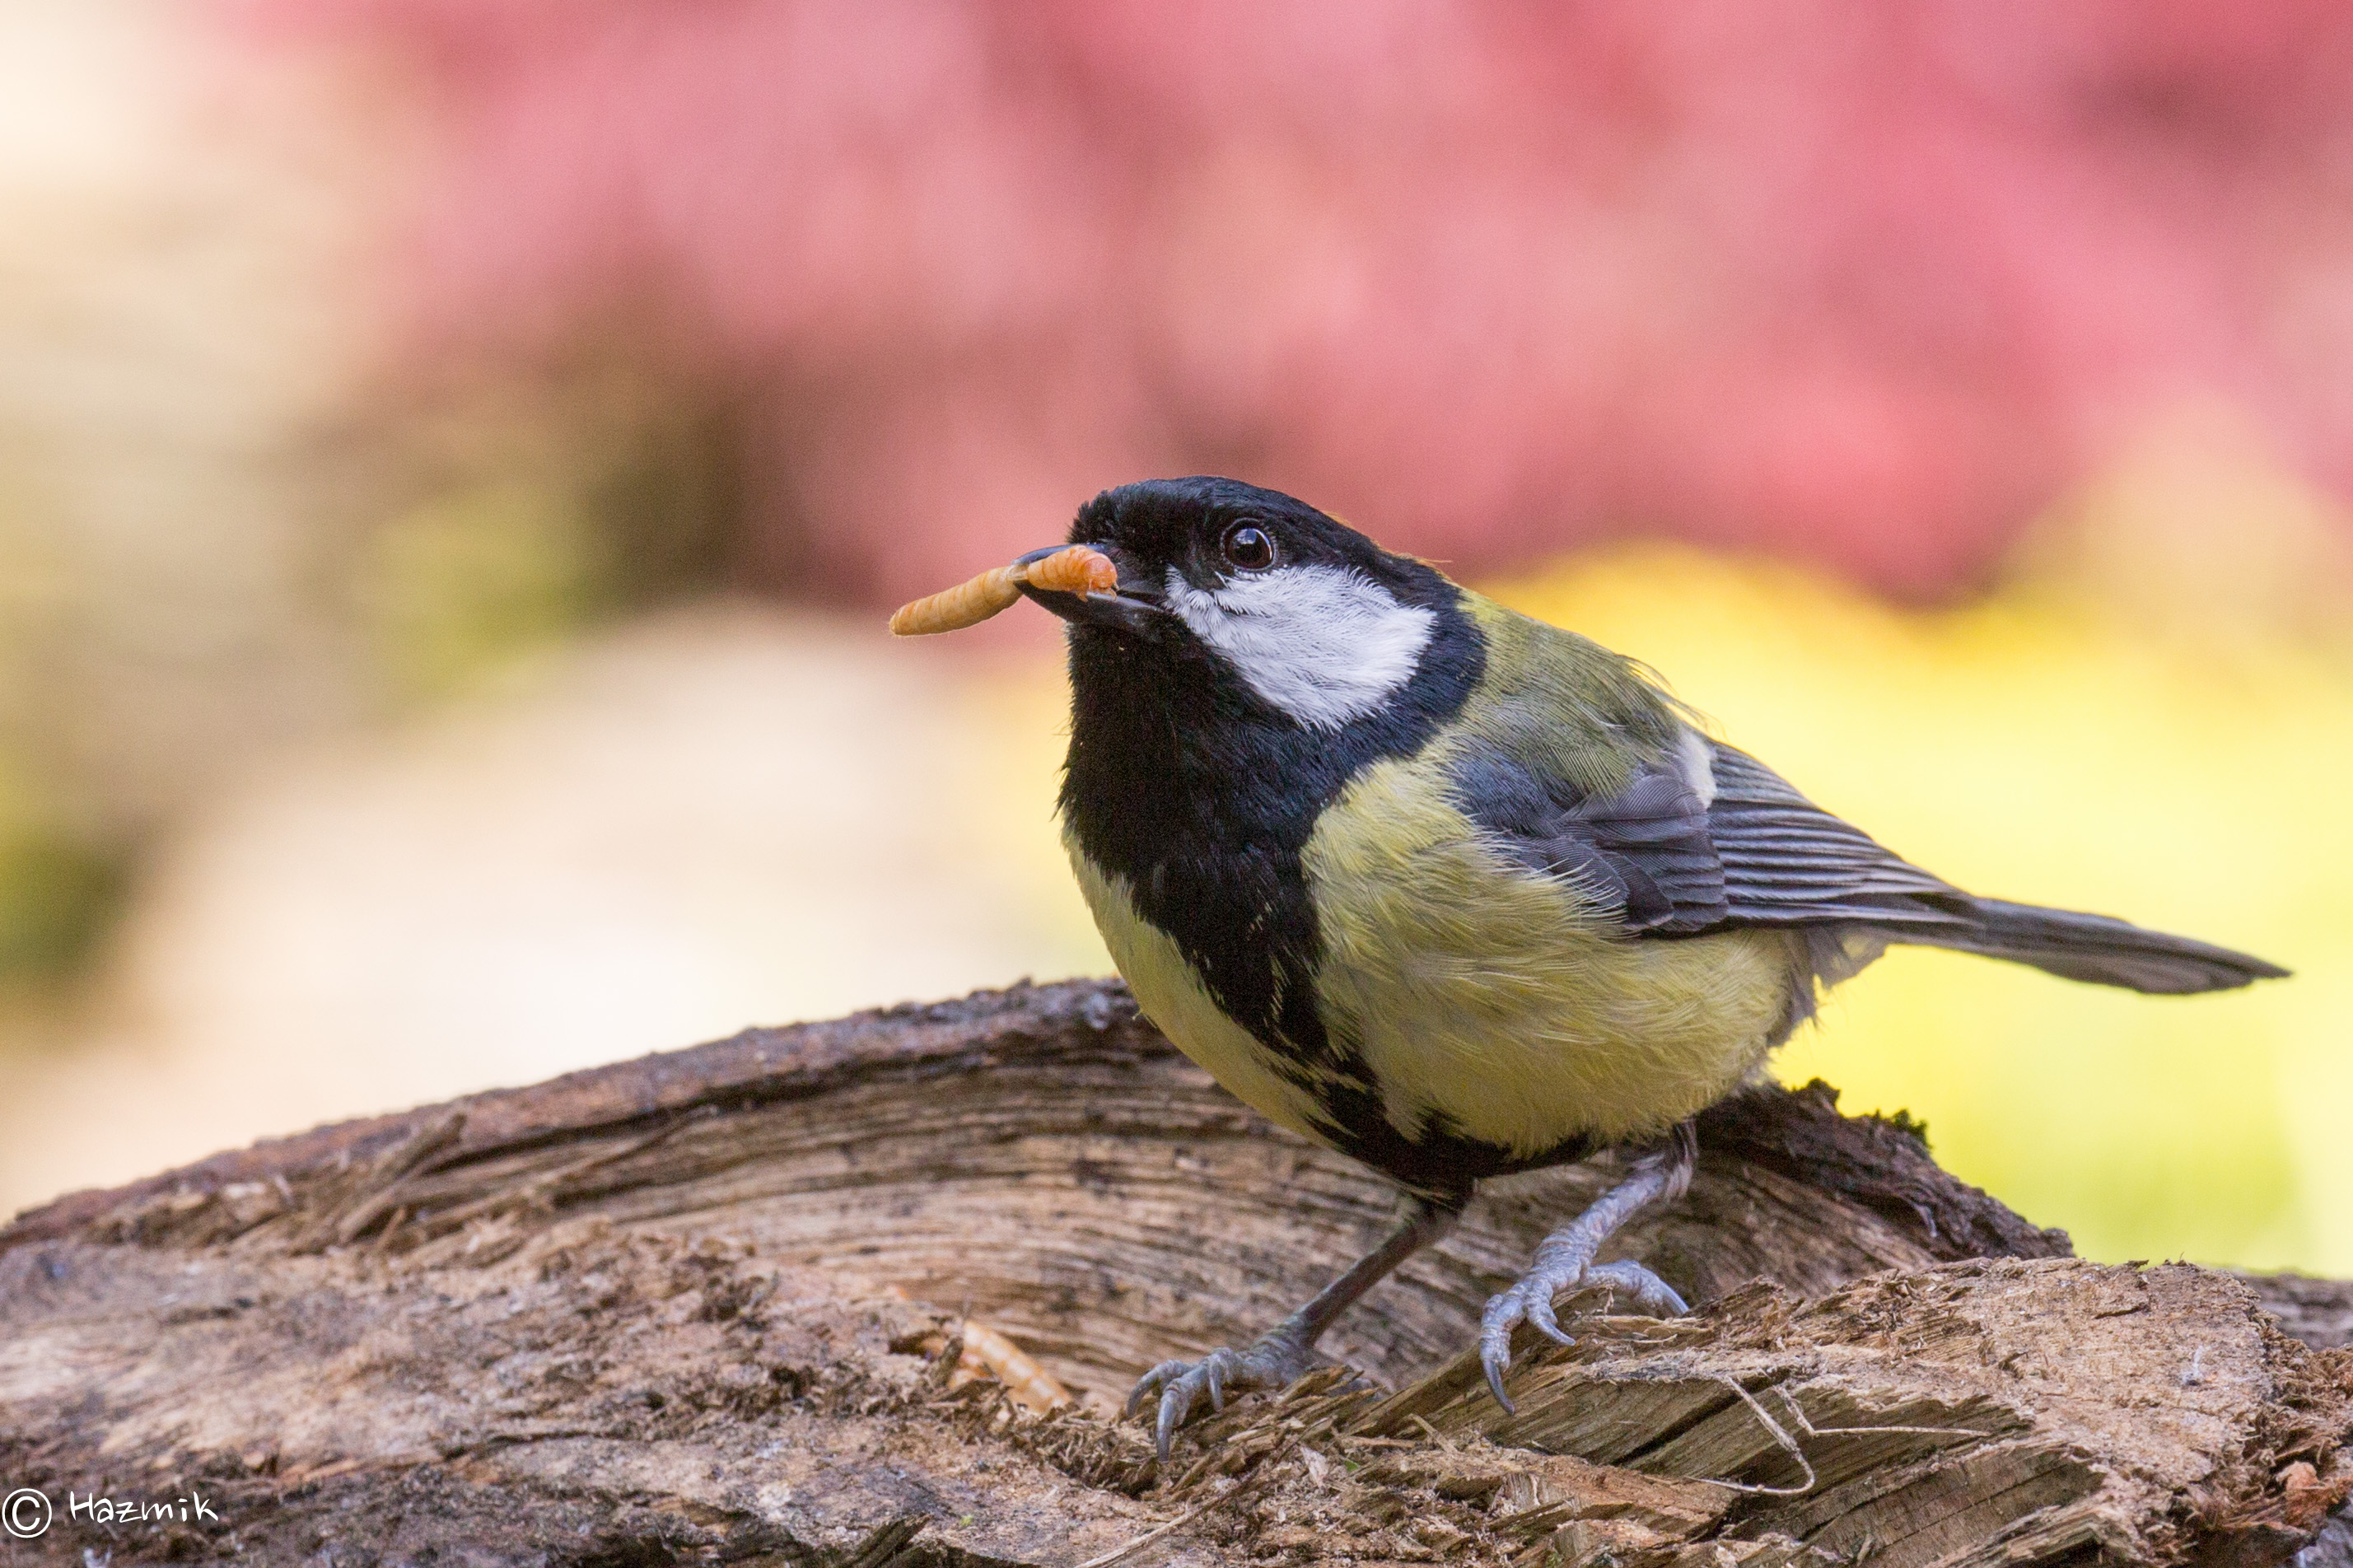 birds chat sites Search birds chat rooms within the internet relay chat search birds in chat room topics of around 500 irc networks current chat rooms: birds, generalrelativity, kspd&d, grenode, rainbot.